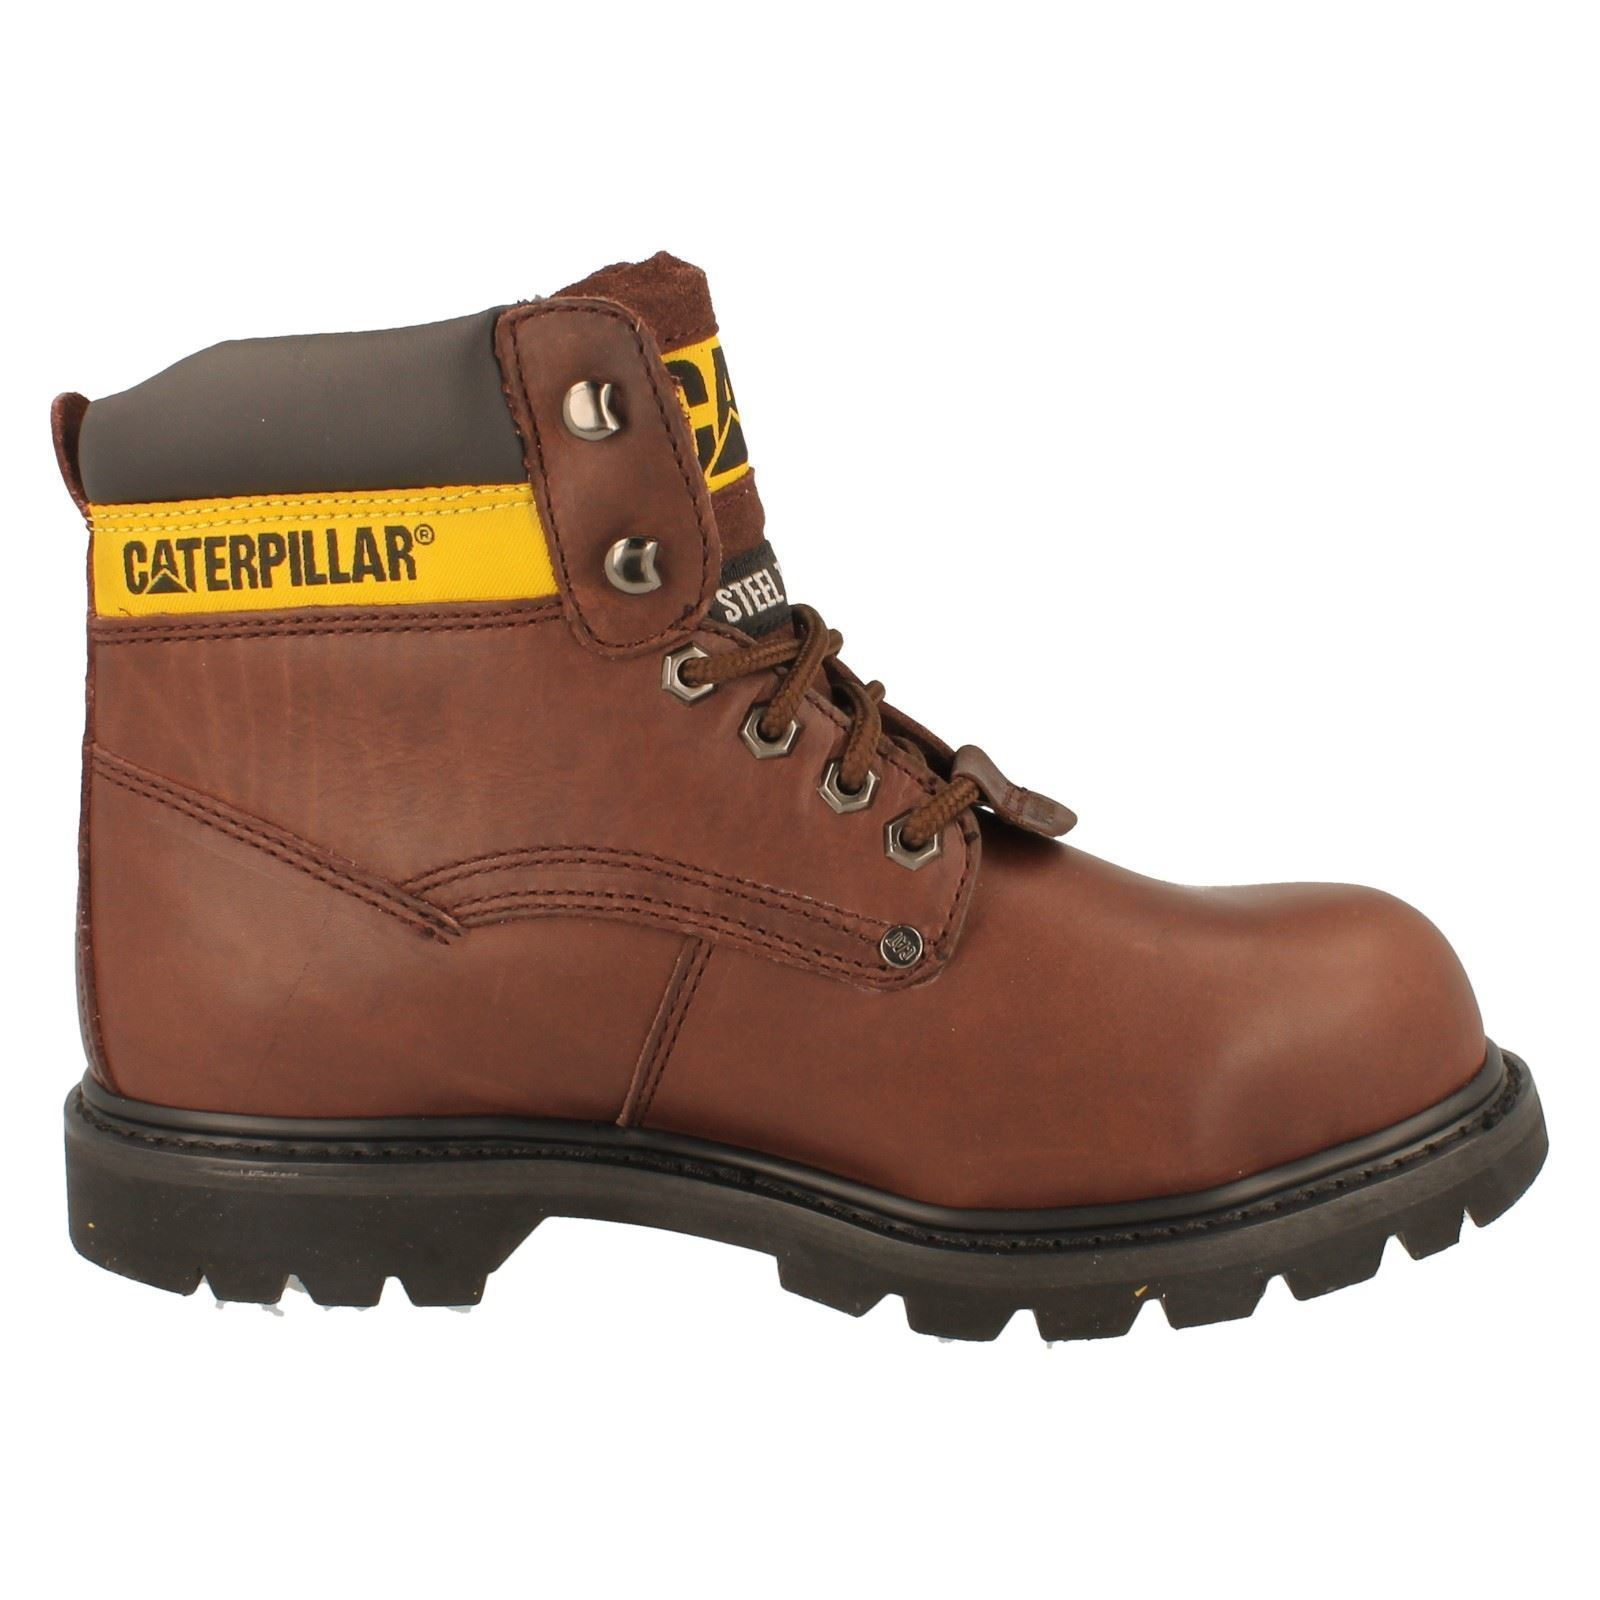 mens caterpillar steel toe safety work boots sheffield ebay. Black Bedroom Furniture Sets. Home Design Ideas